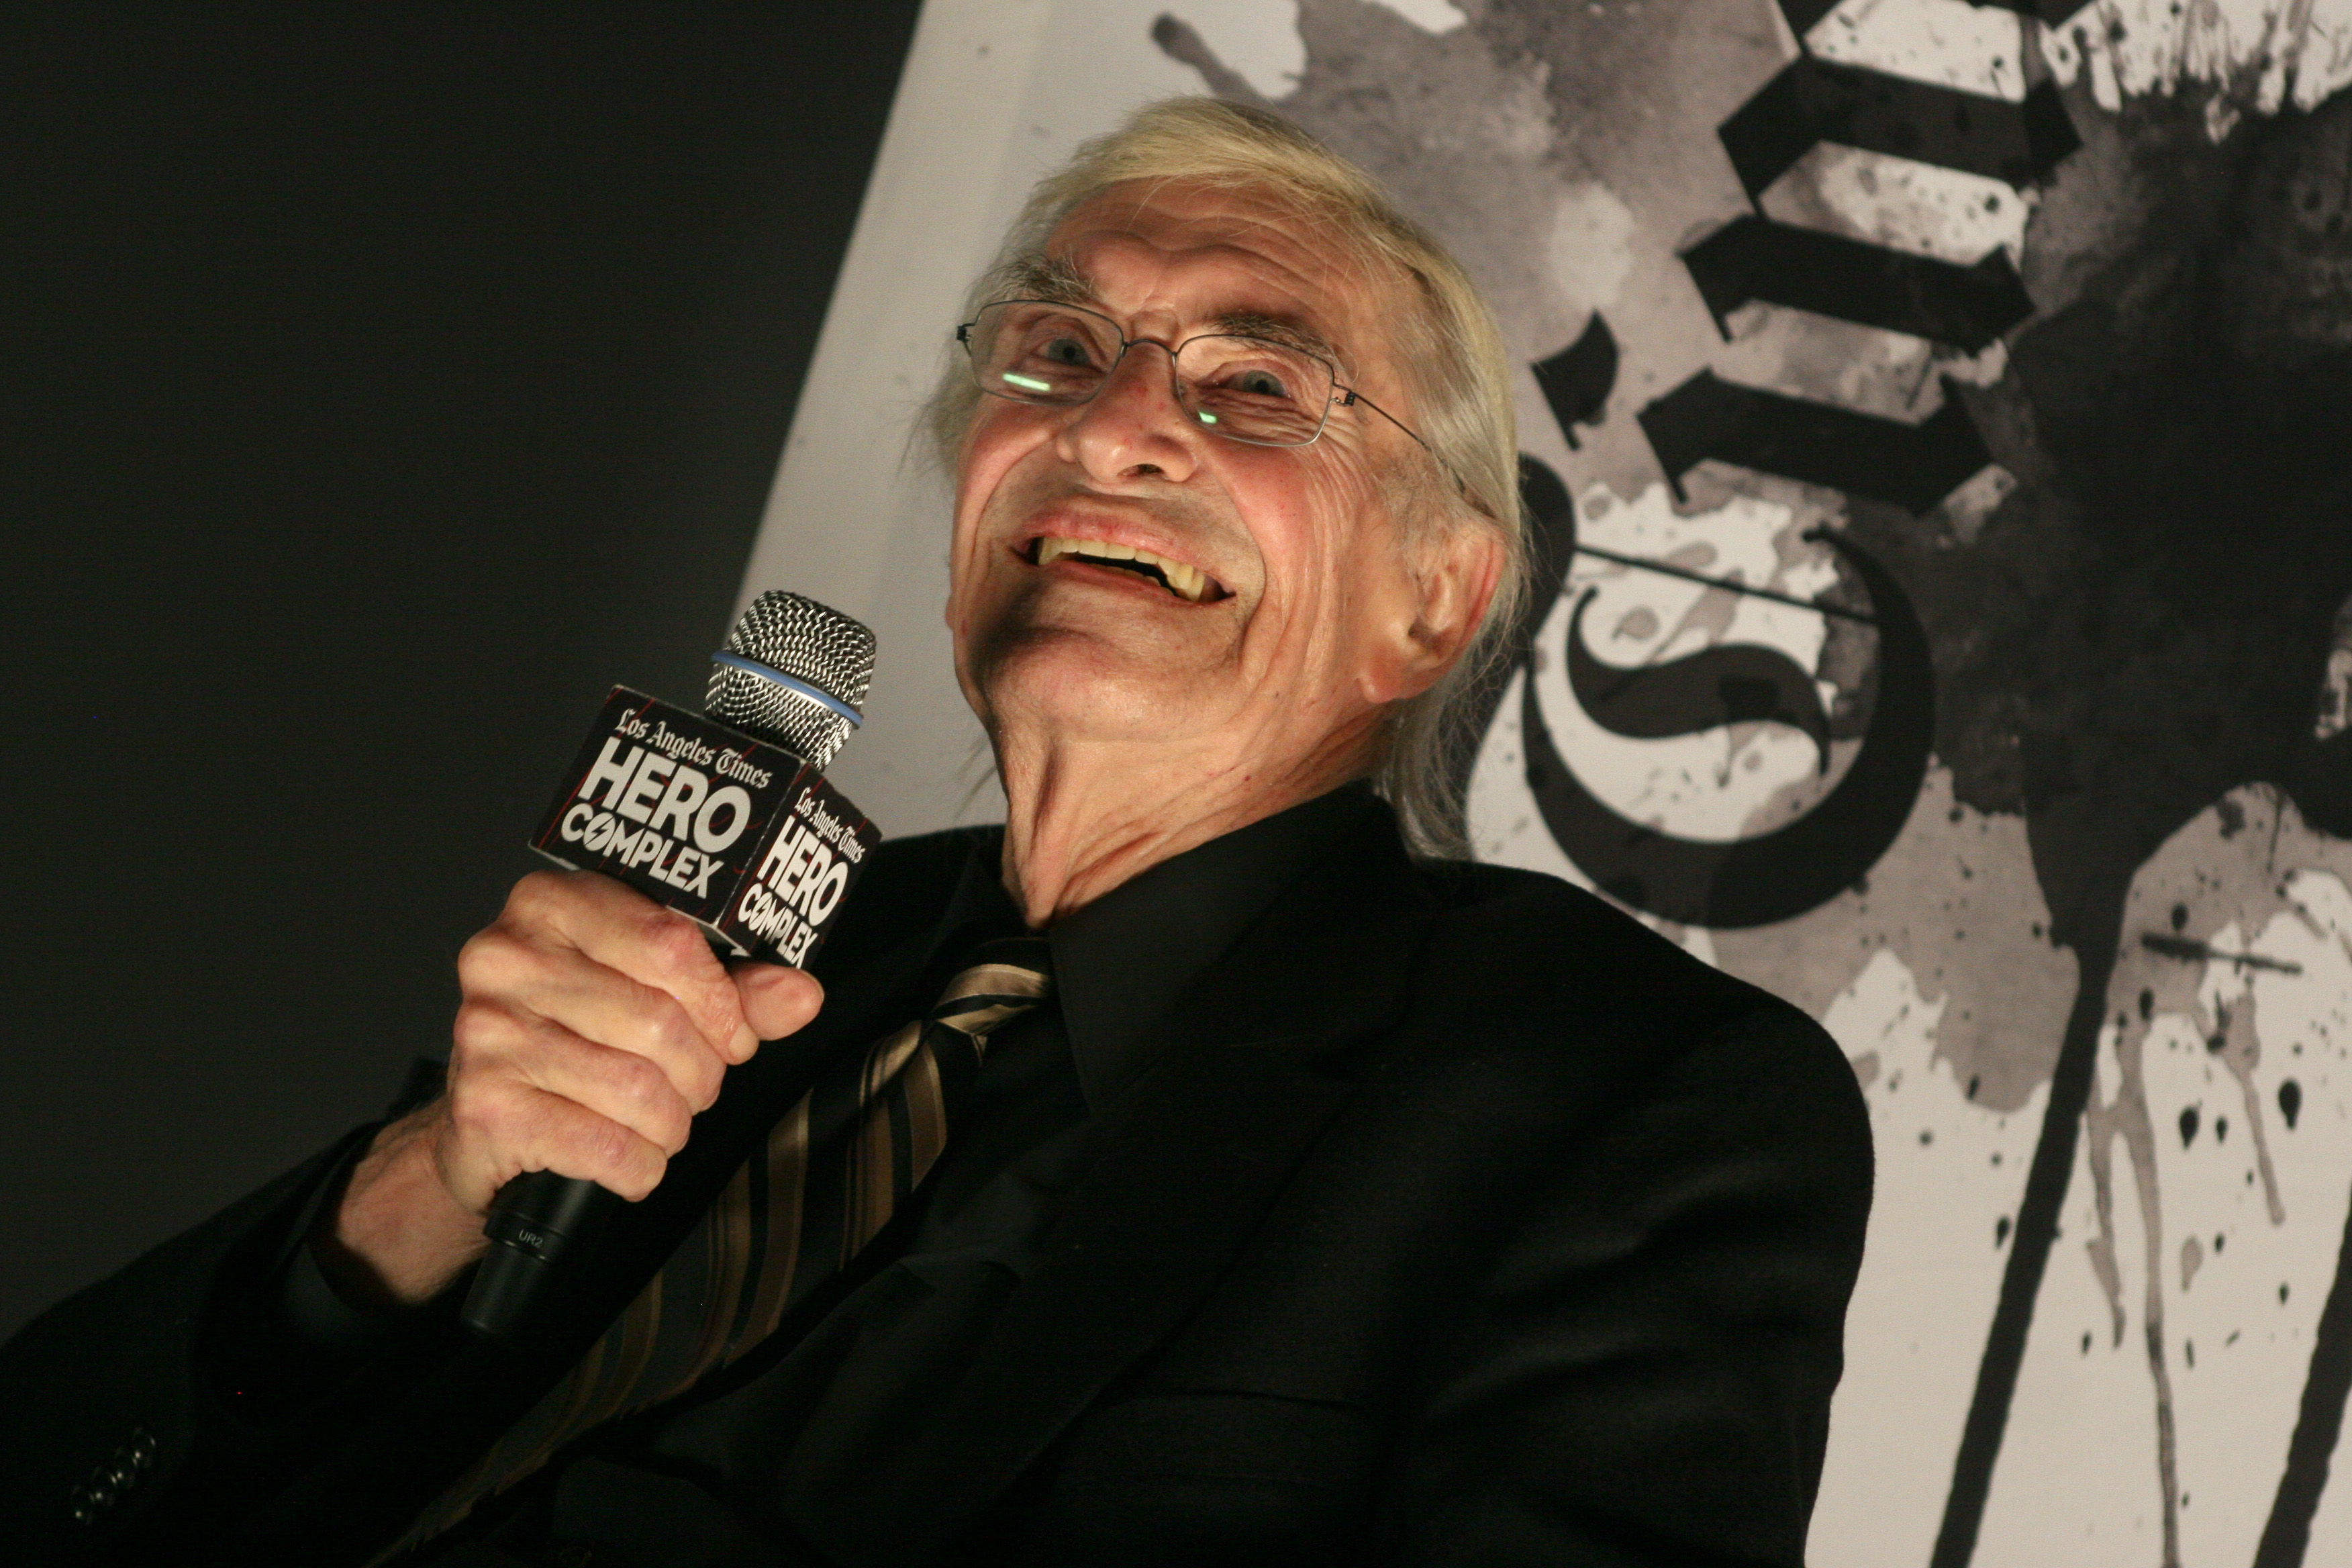 Martin Landau at Hero Complex